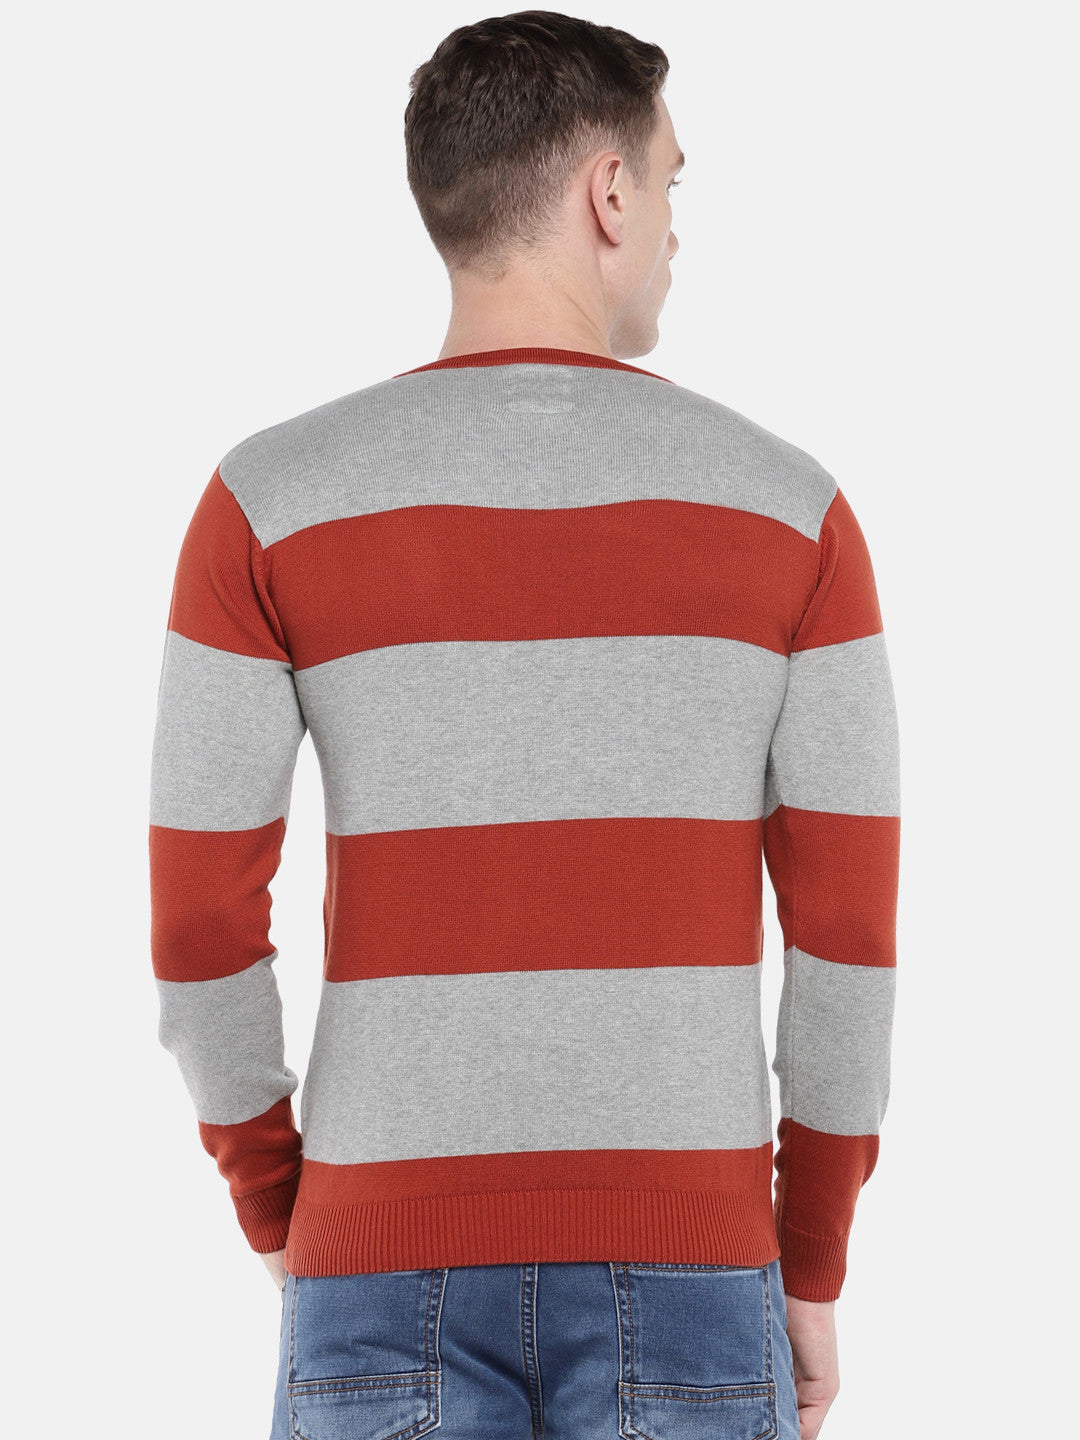 Rust Orange & Grey Striped Sweater-3